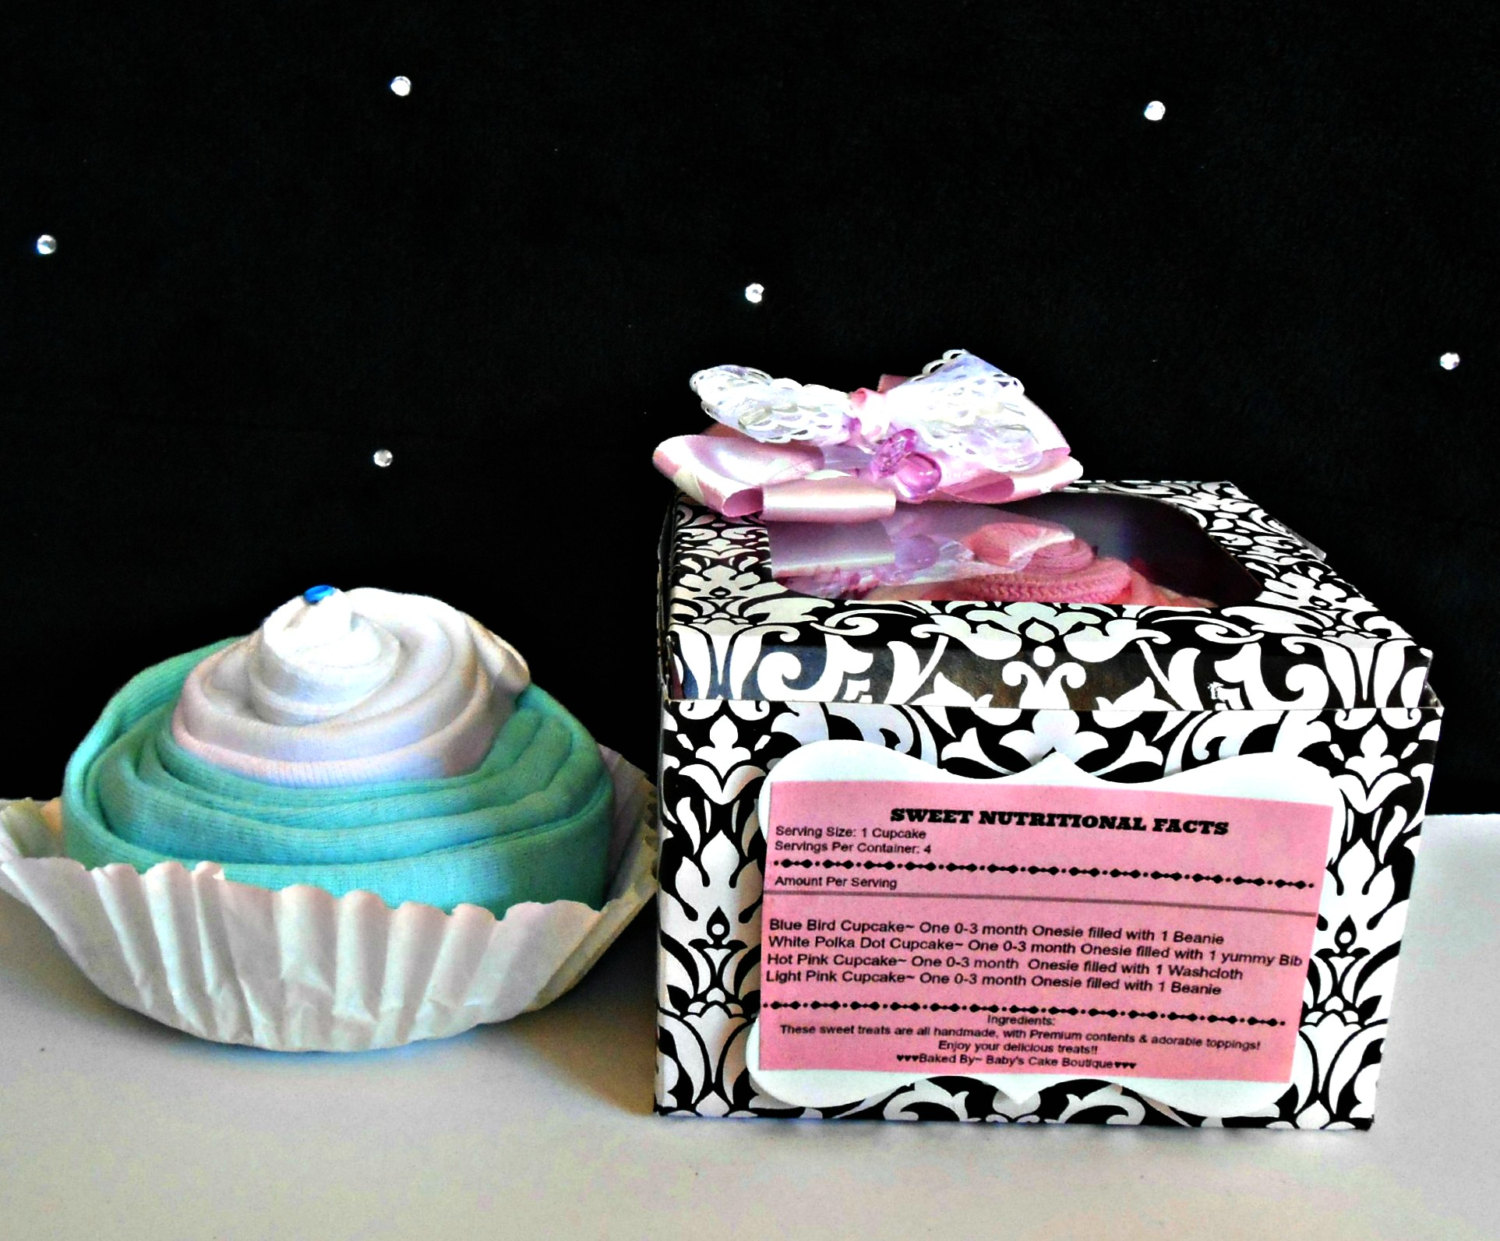 Décoration De Cupcake Baby Girl Shower Gift Parent Gift Baby Shower Decoration Cupcake Box Cupcake Baby Gift Baby Girl Cupcake Onesie From Baby S Cake Boutique